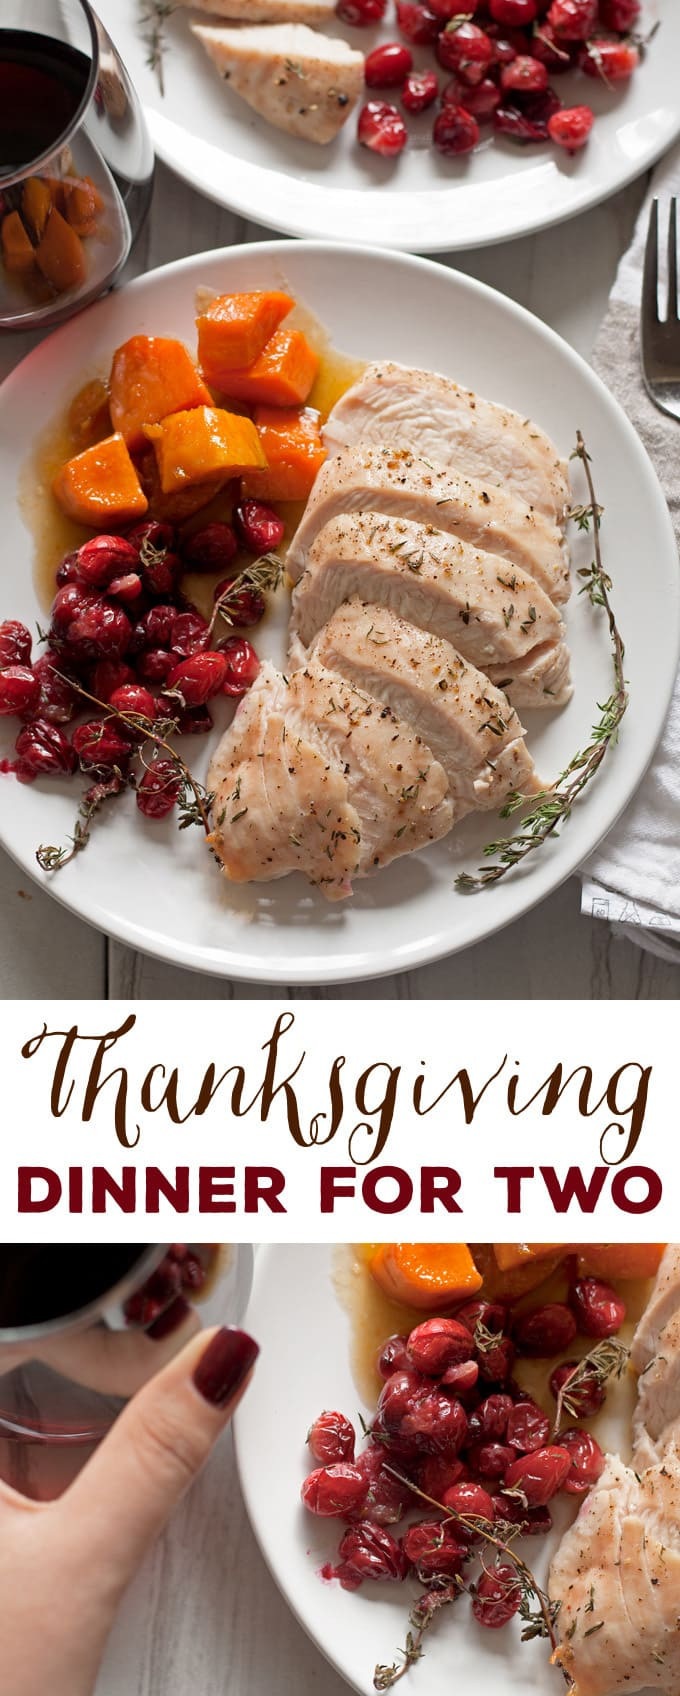 Thanksgiving Turkey For Two  Thanksgiving Dinner for Two Turkey Breast Dinner for Two